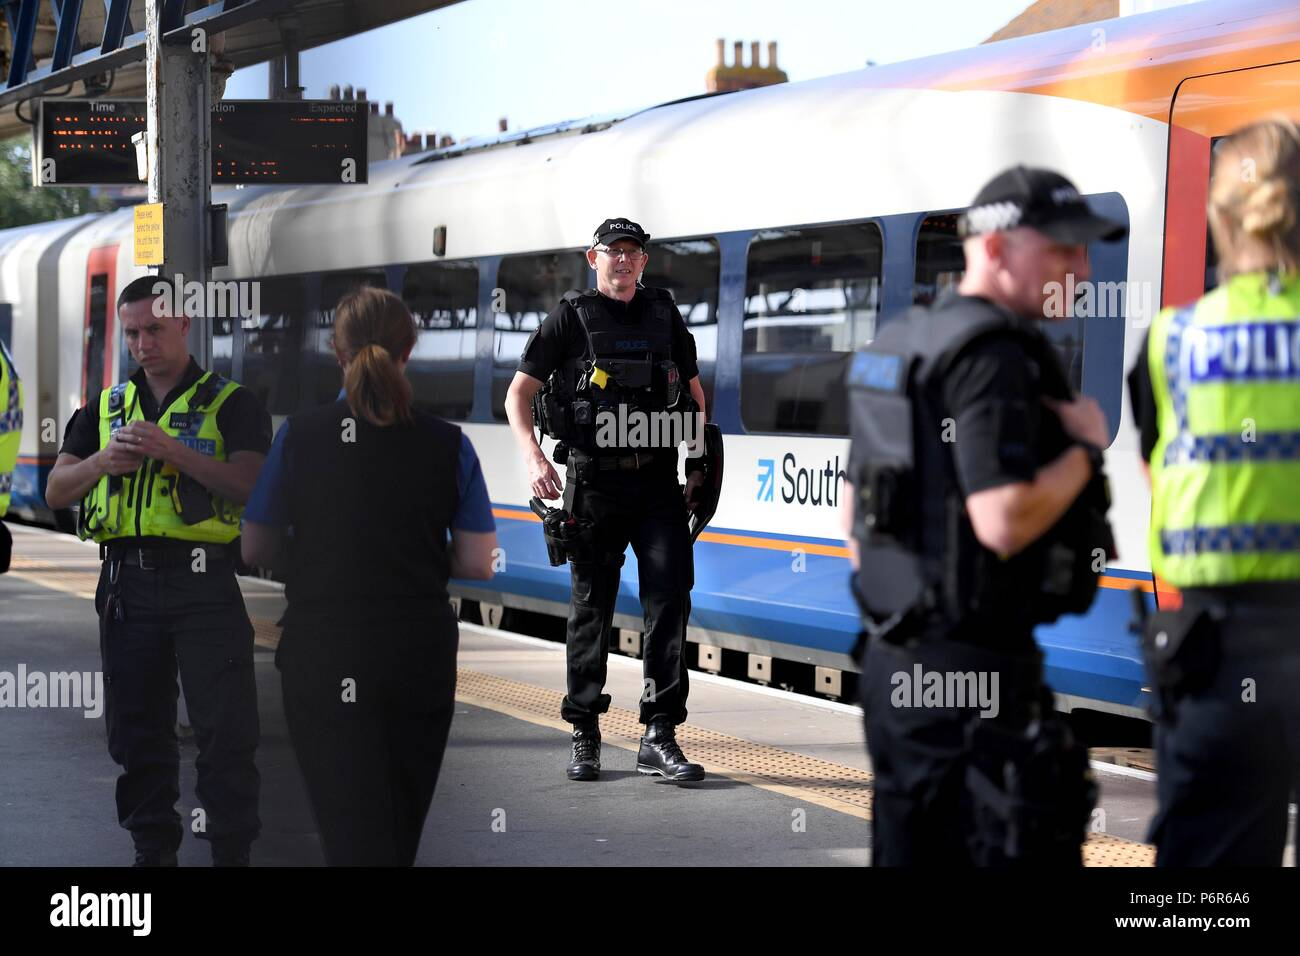 Weymouth, Dorset, UK. 2nd July 2018. A man seen 'in possession of a knife' on a train at Weymouth station. Credit: Finnbarr Webster/Alamy Live News - Stock Image